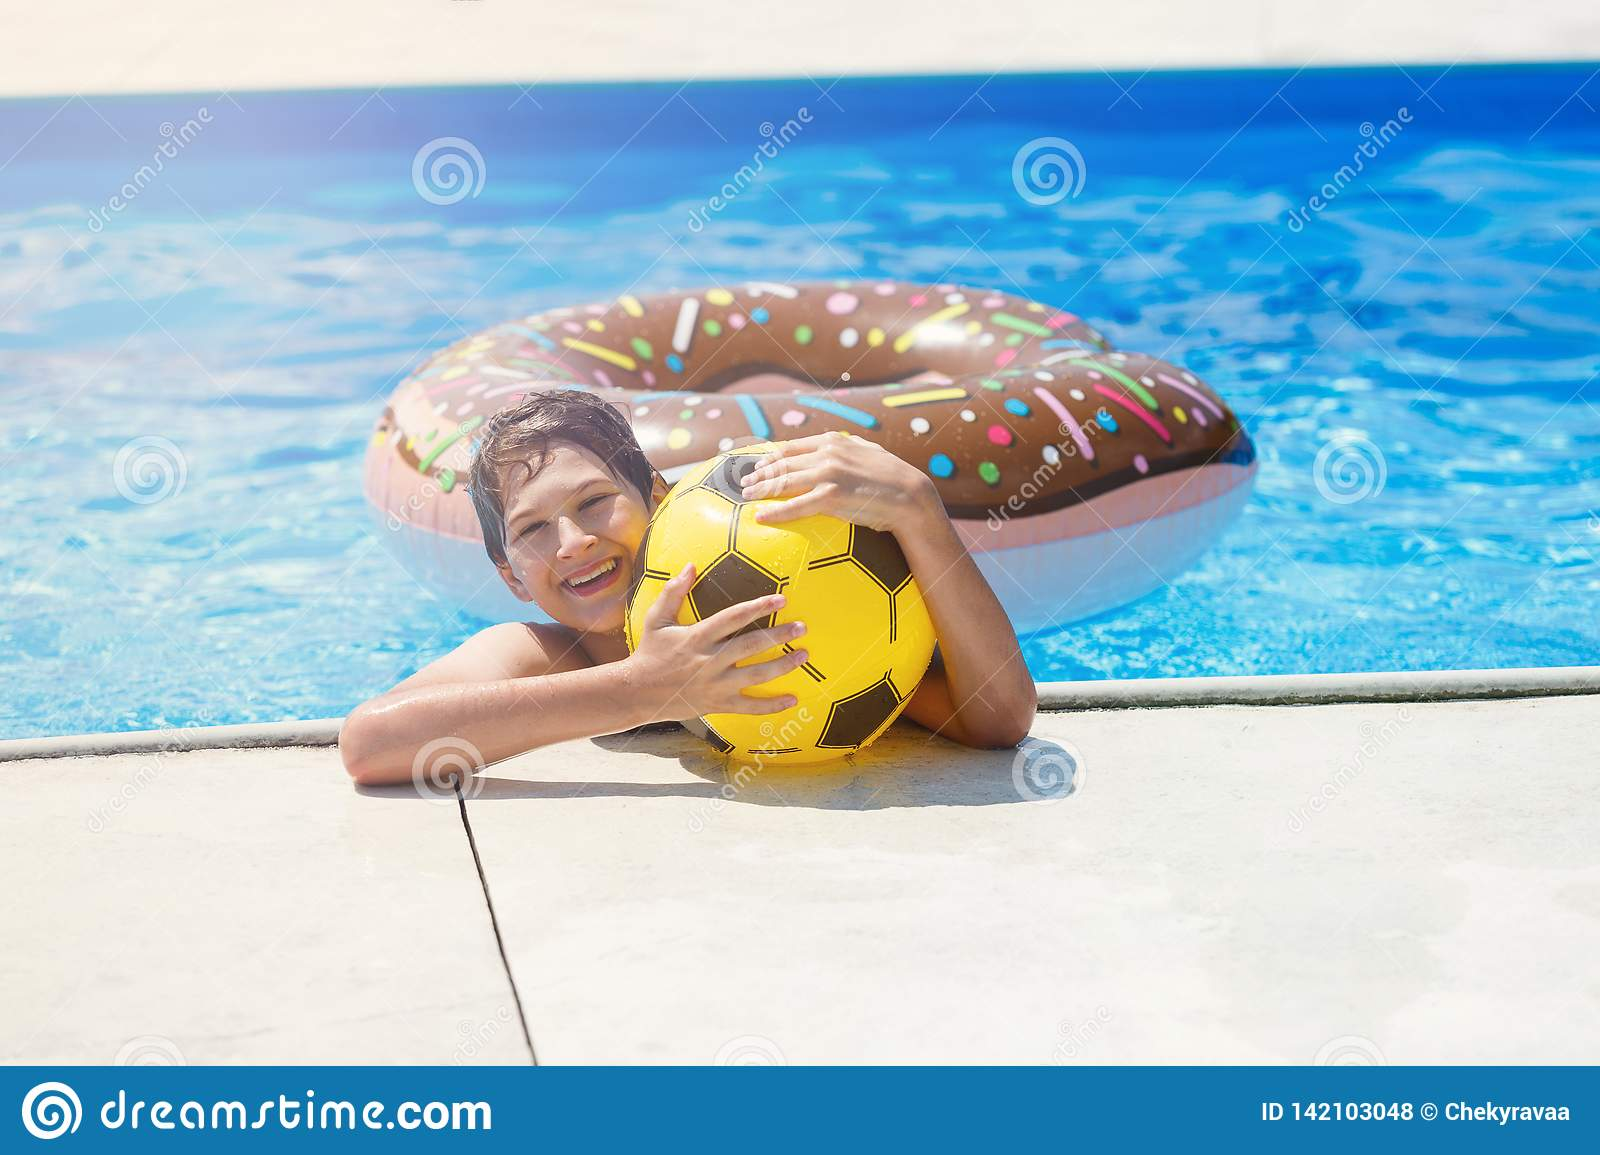 Happy cute little boy teenager in swimming pool. Active games on water, vacation, holidays concept. Chocolate donut.